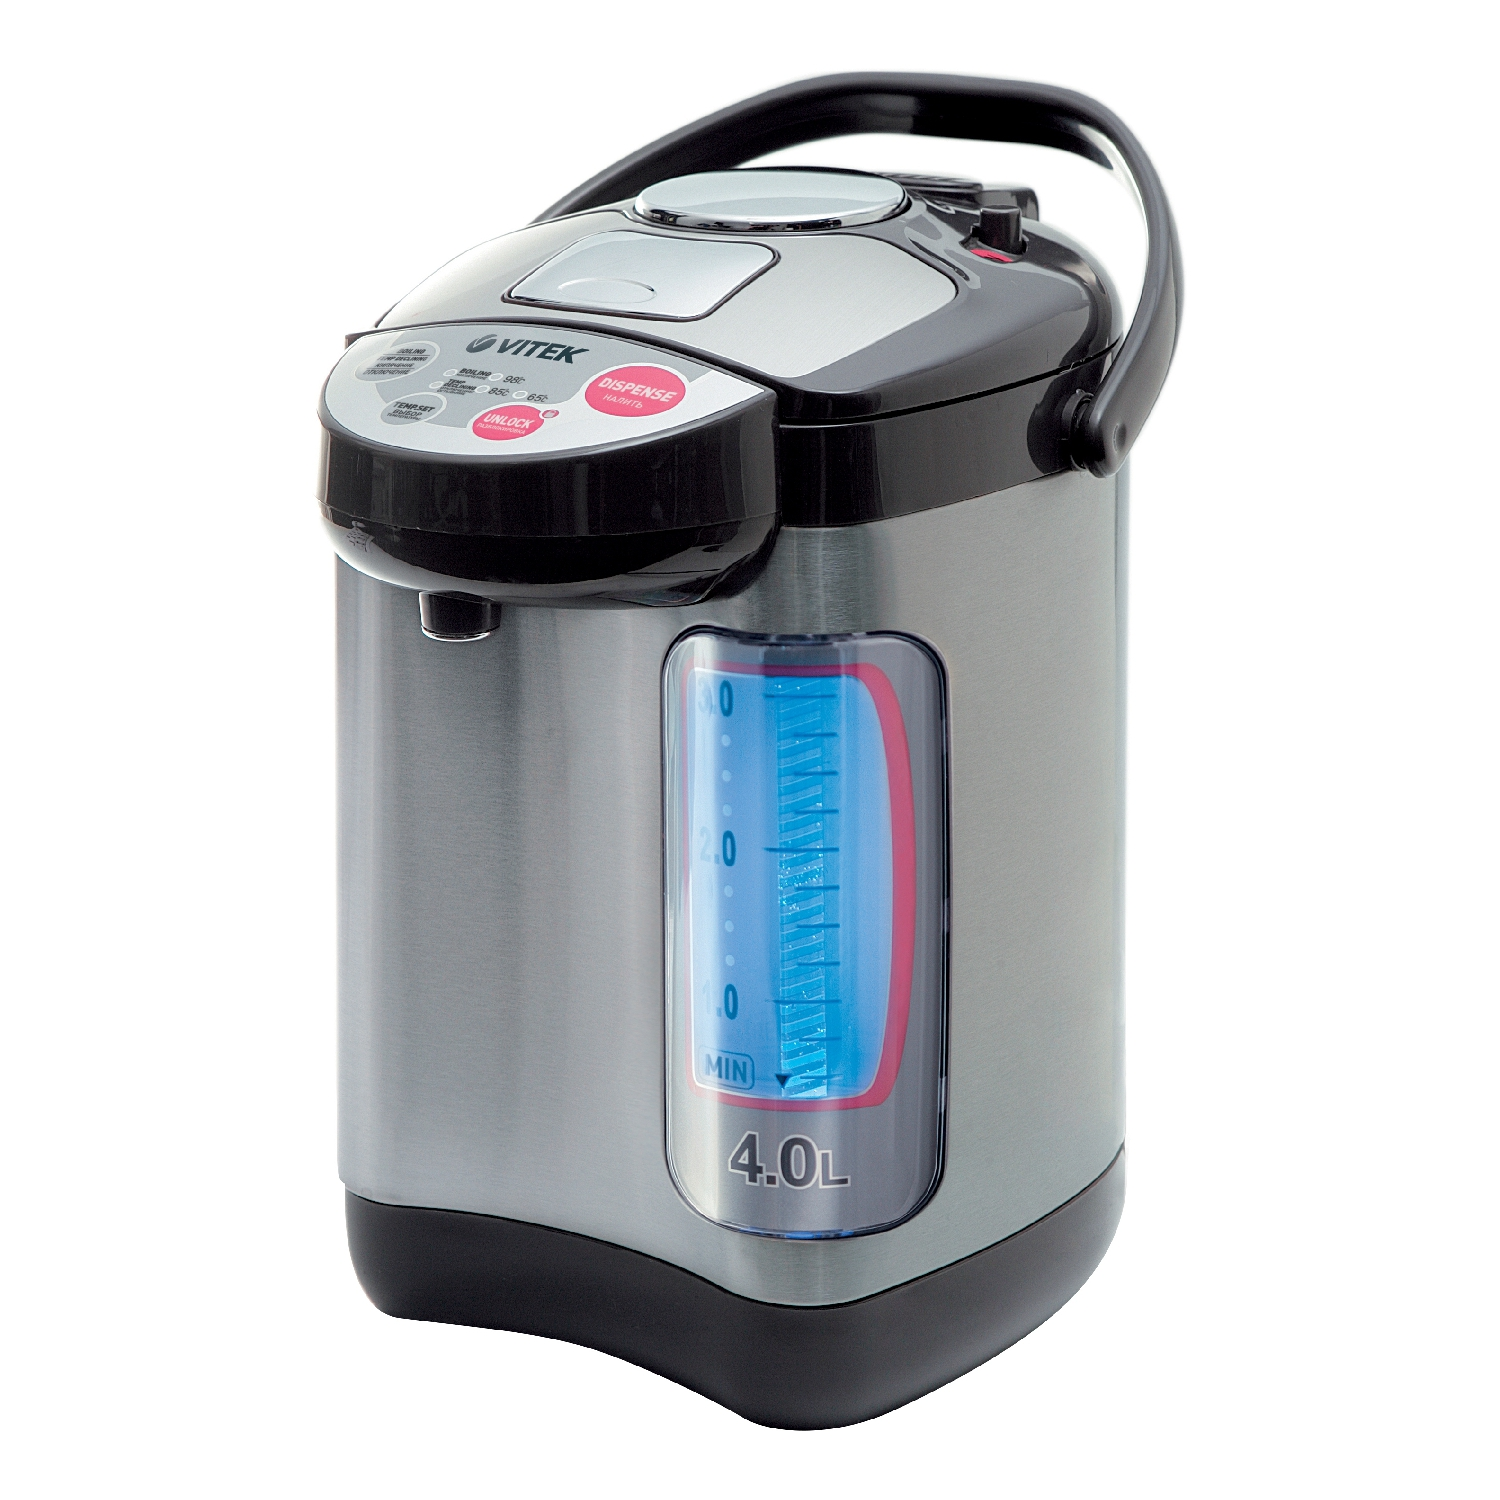 все цены на Thermal Vitek VT-1188 (GY) (Power 750 W, volume 4 liters, 3 ways of spilling water, automatic water supply by touching the cup) онлайн